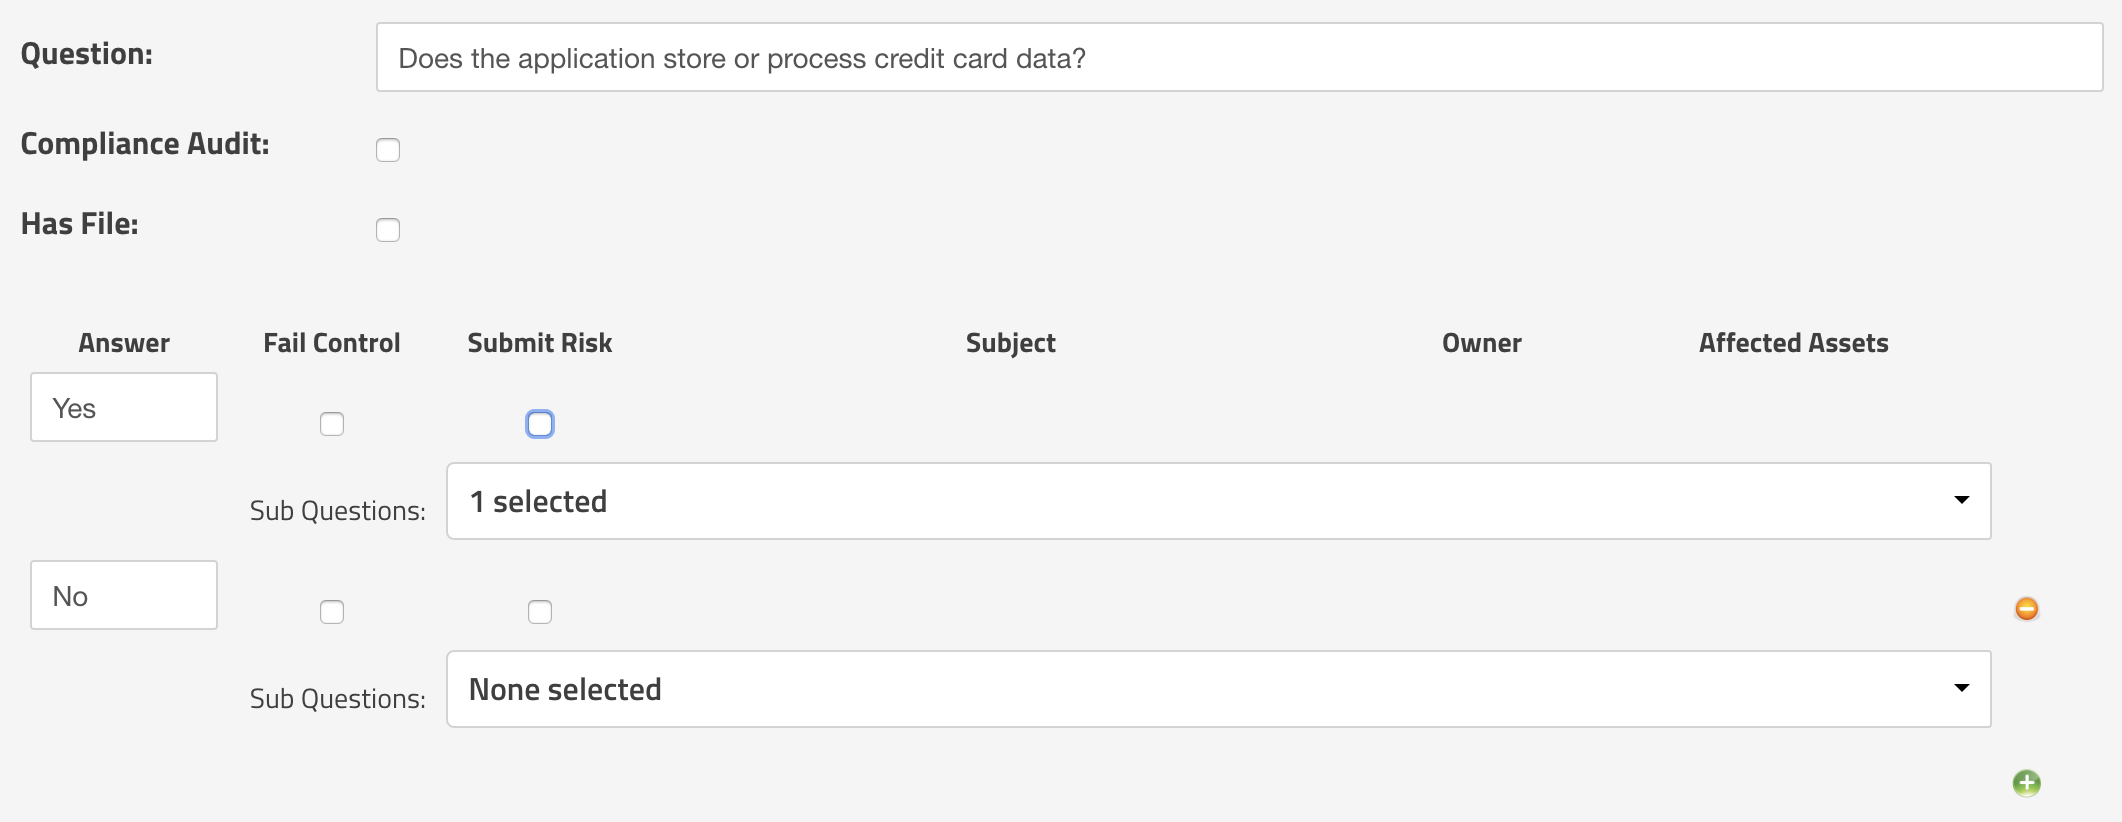 Store or Process Credit Card Data